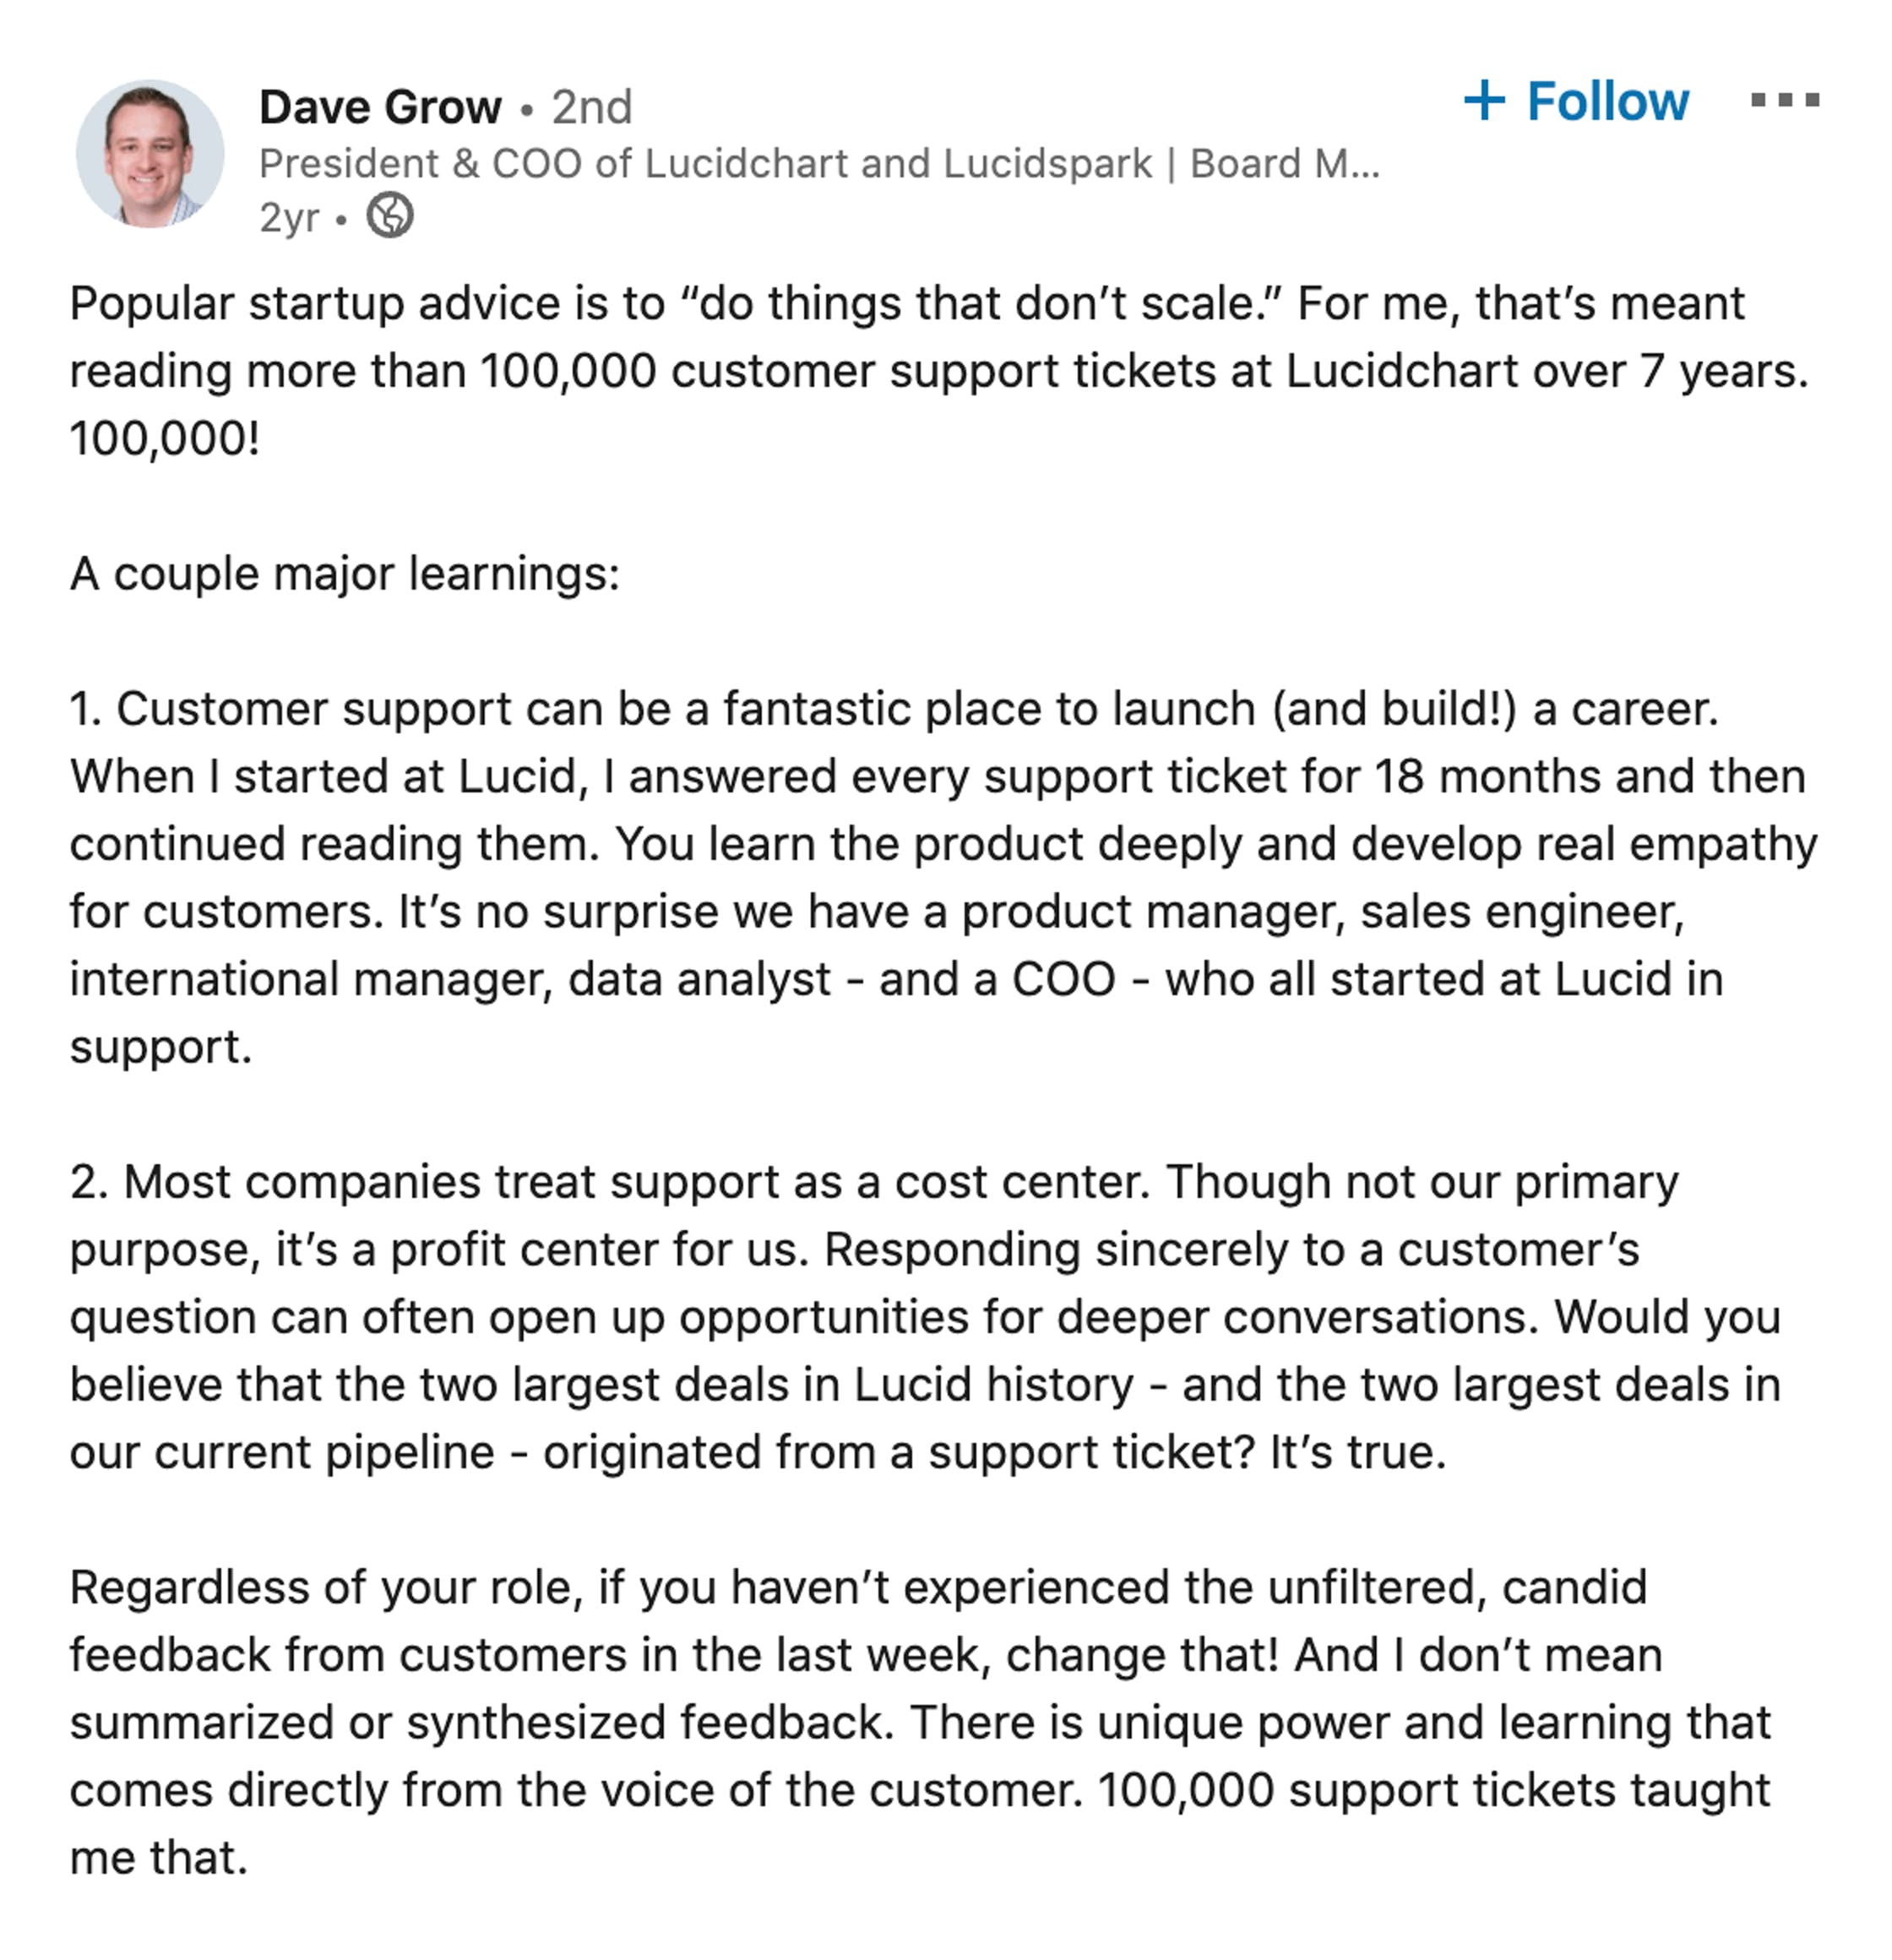 dave grow linkedin post